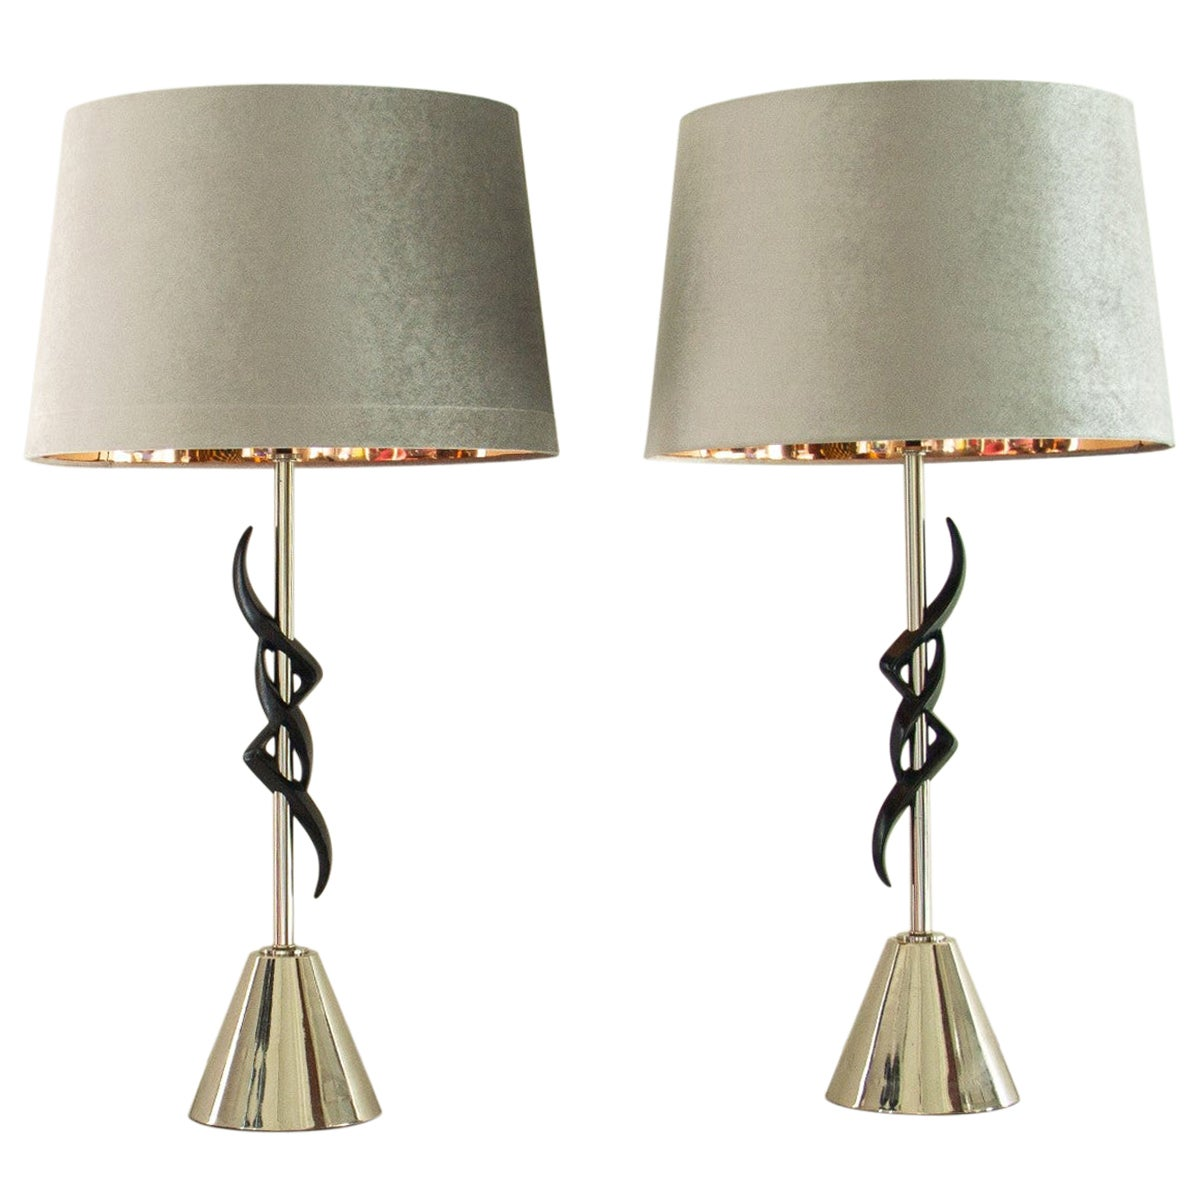 Pair of Rembrandt Designed Lamps, 1950s